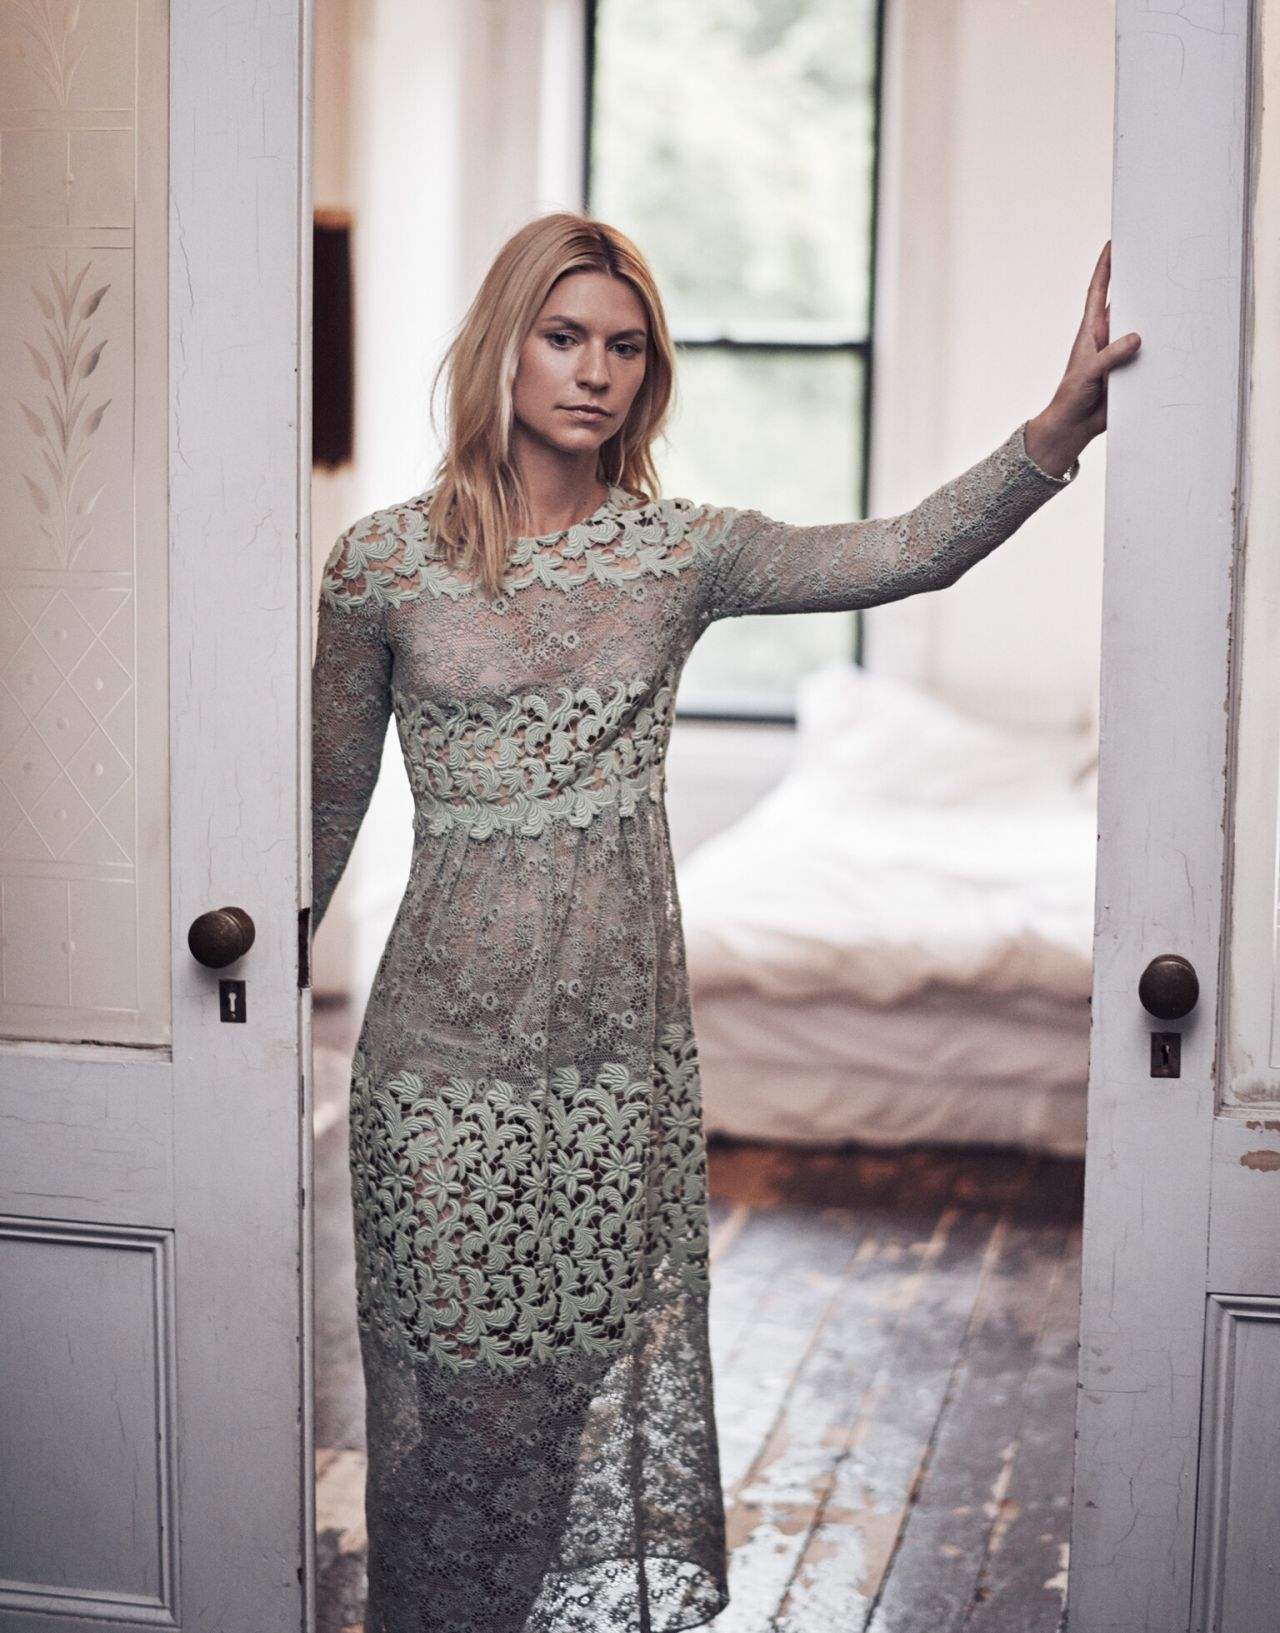 claire-danes-photoshoot-for-the-edit-magazine-december-2015-_8.jpg